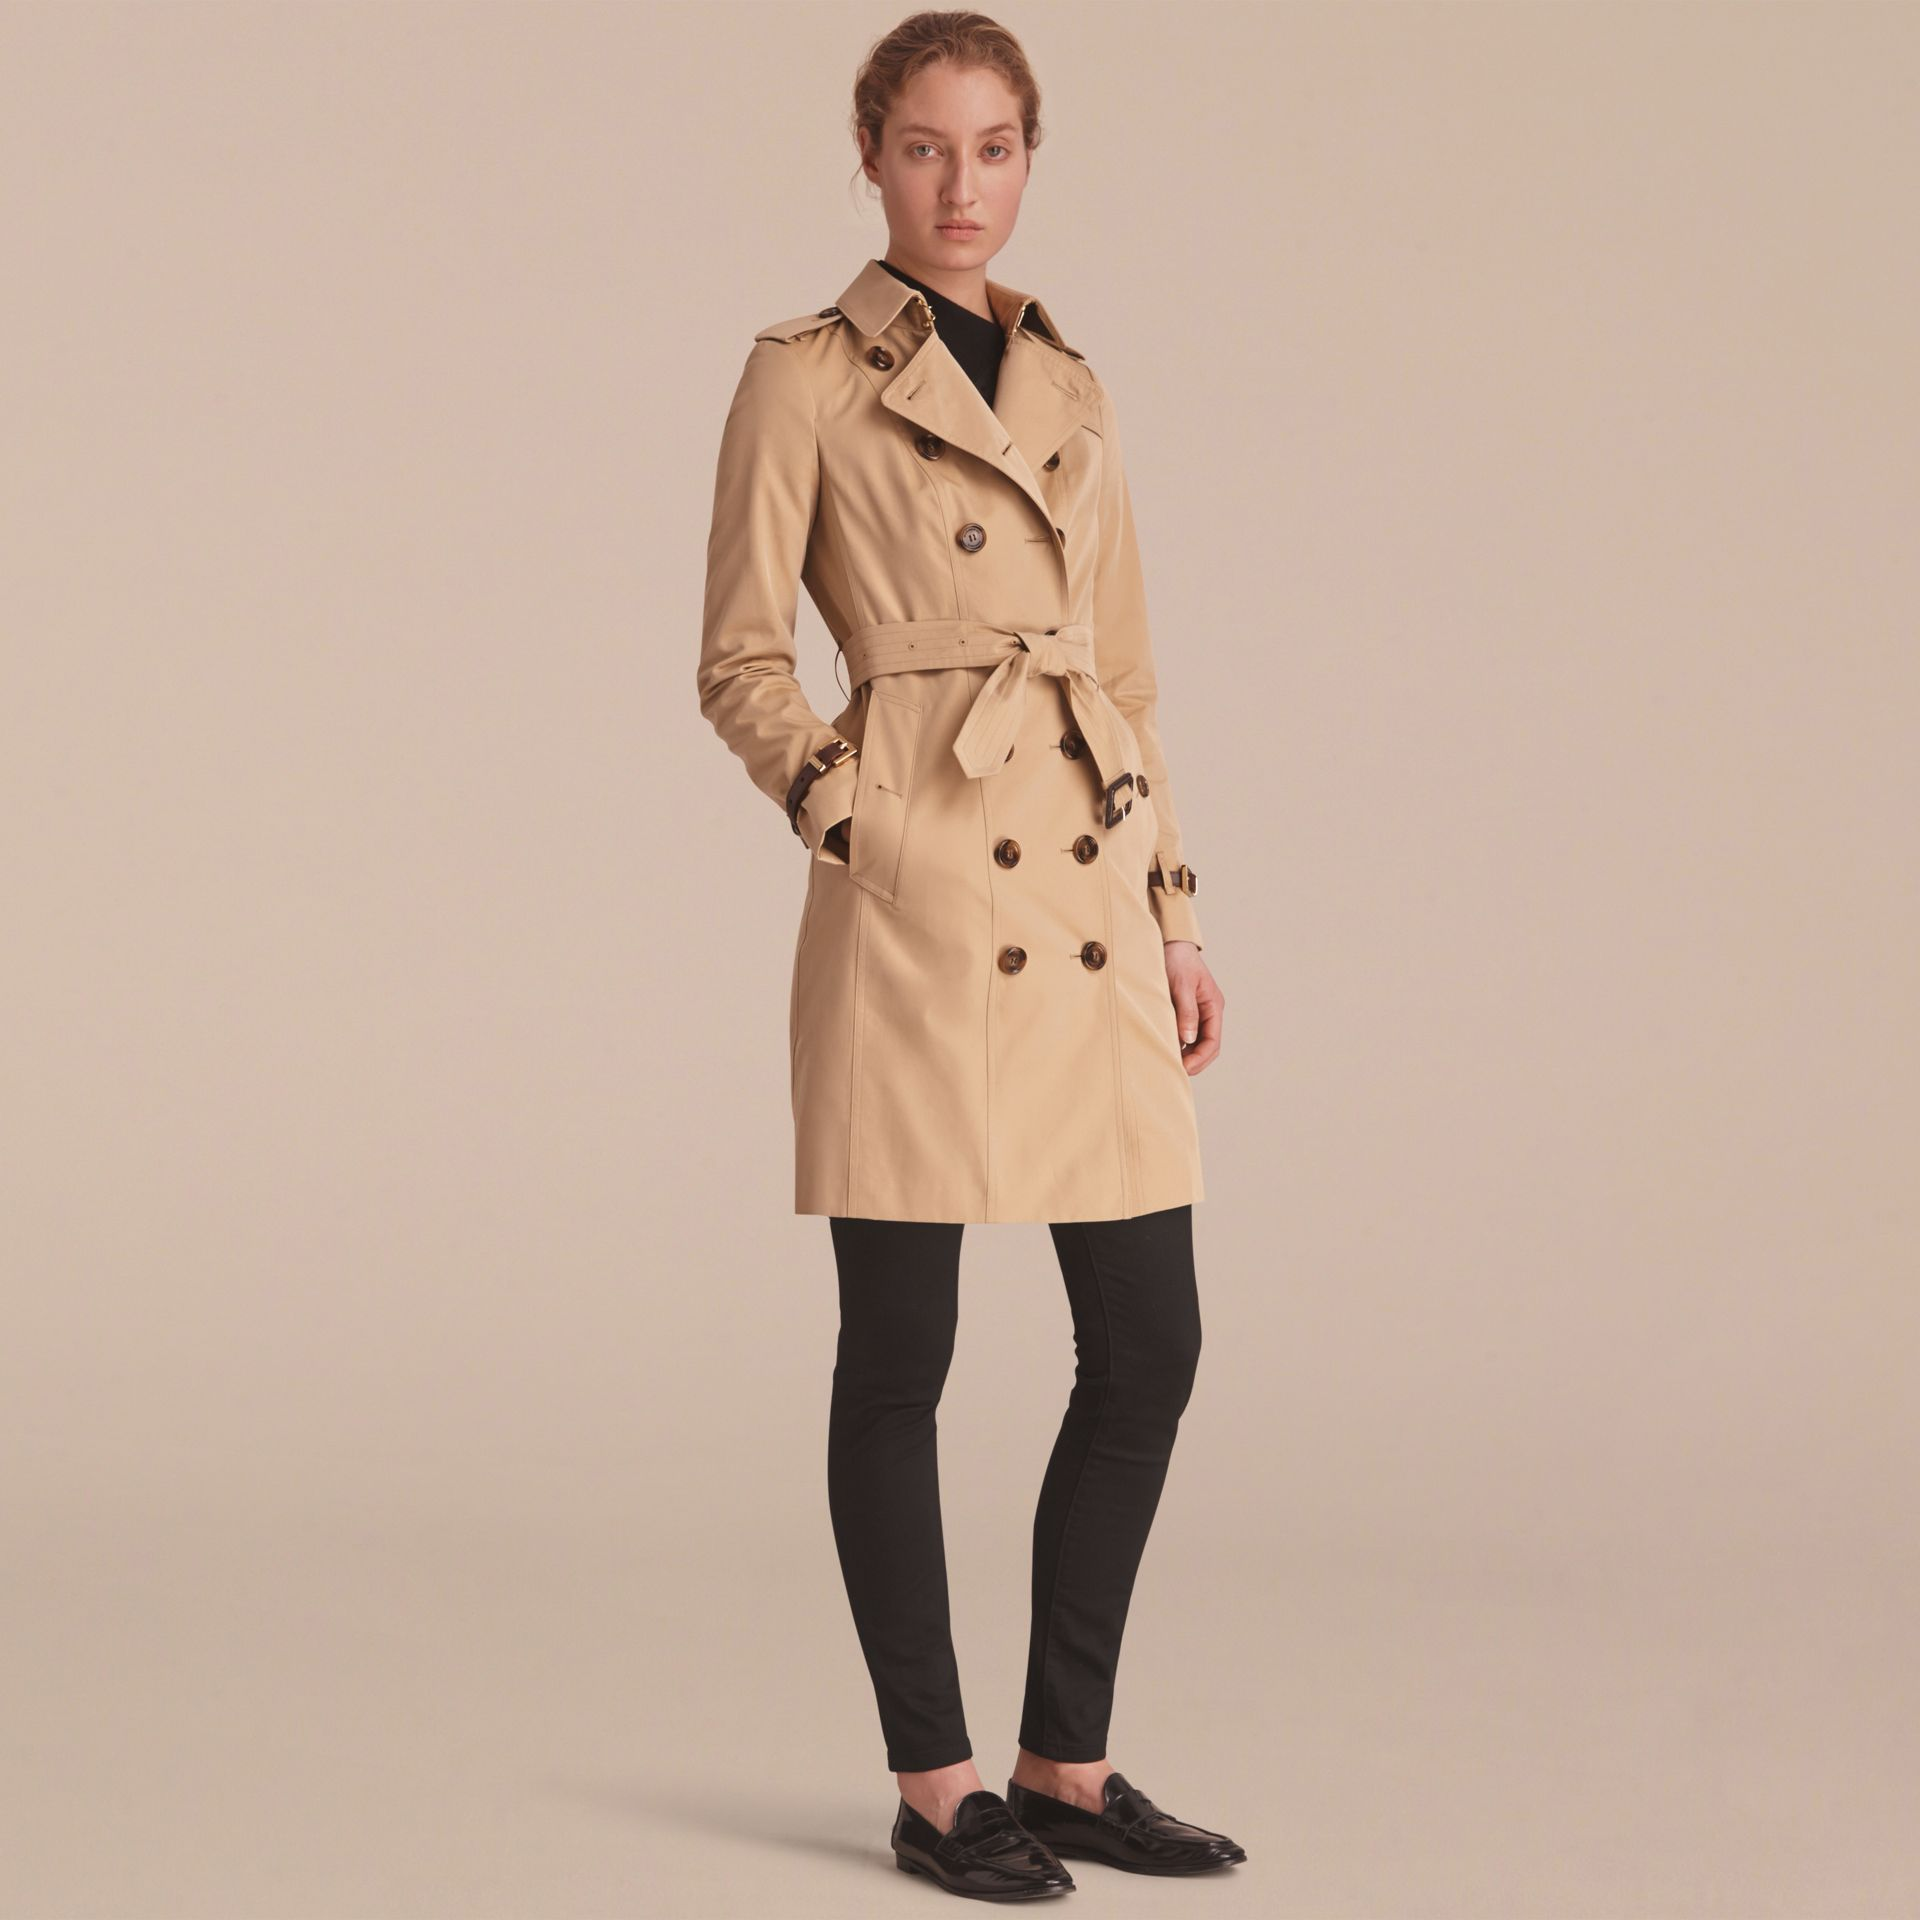 Trench-coat en gabardine de coton avec bordure en cuir - photo de la galerie 8